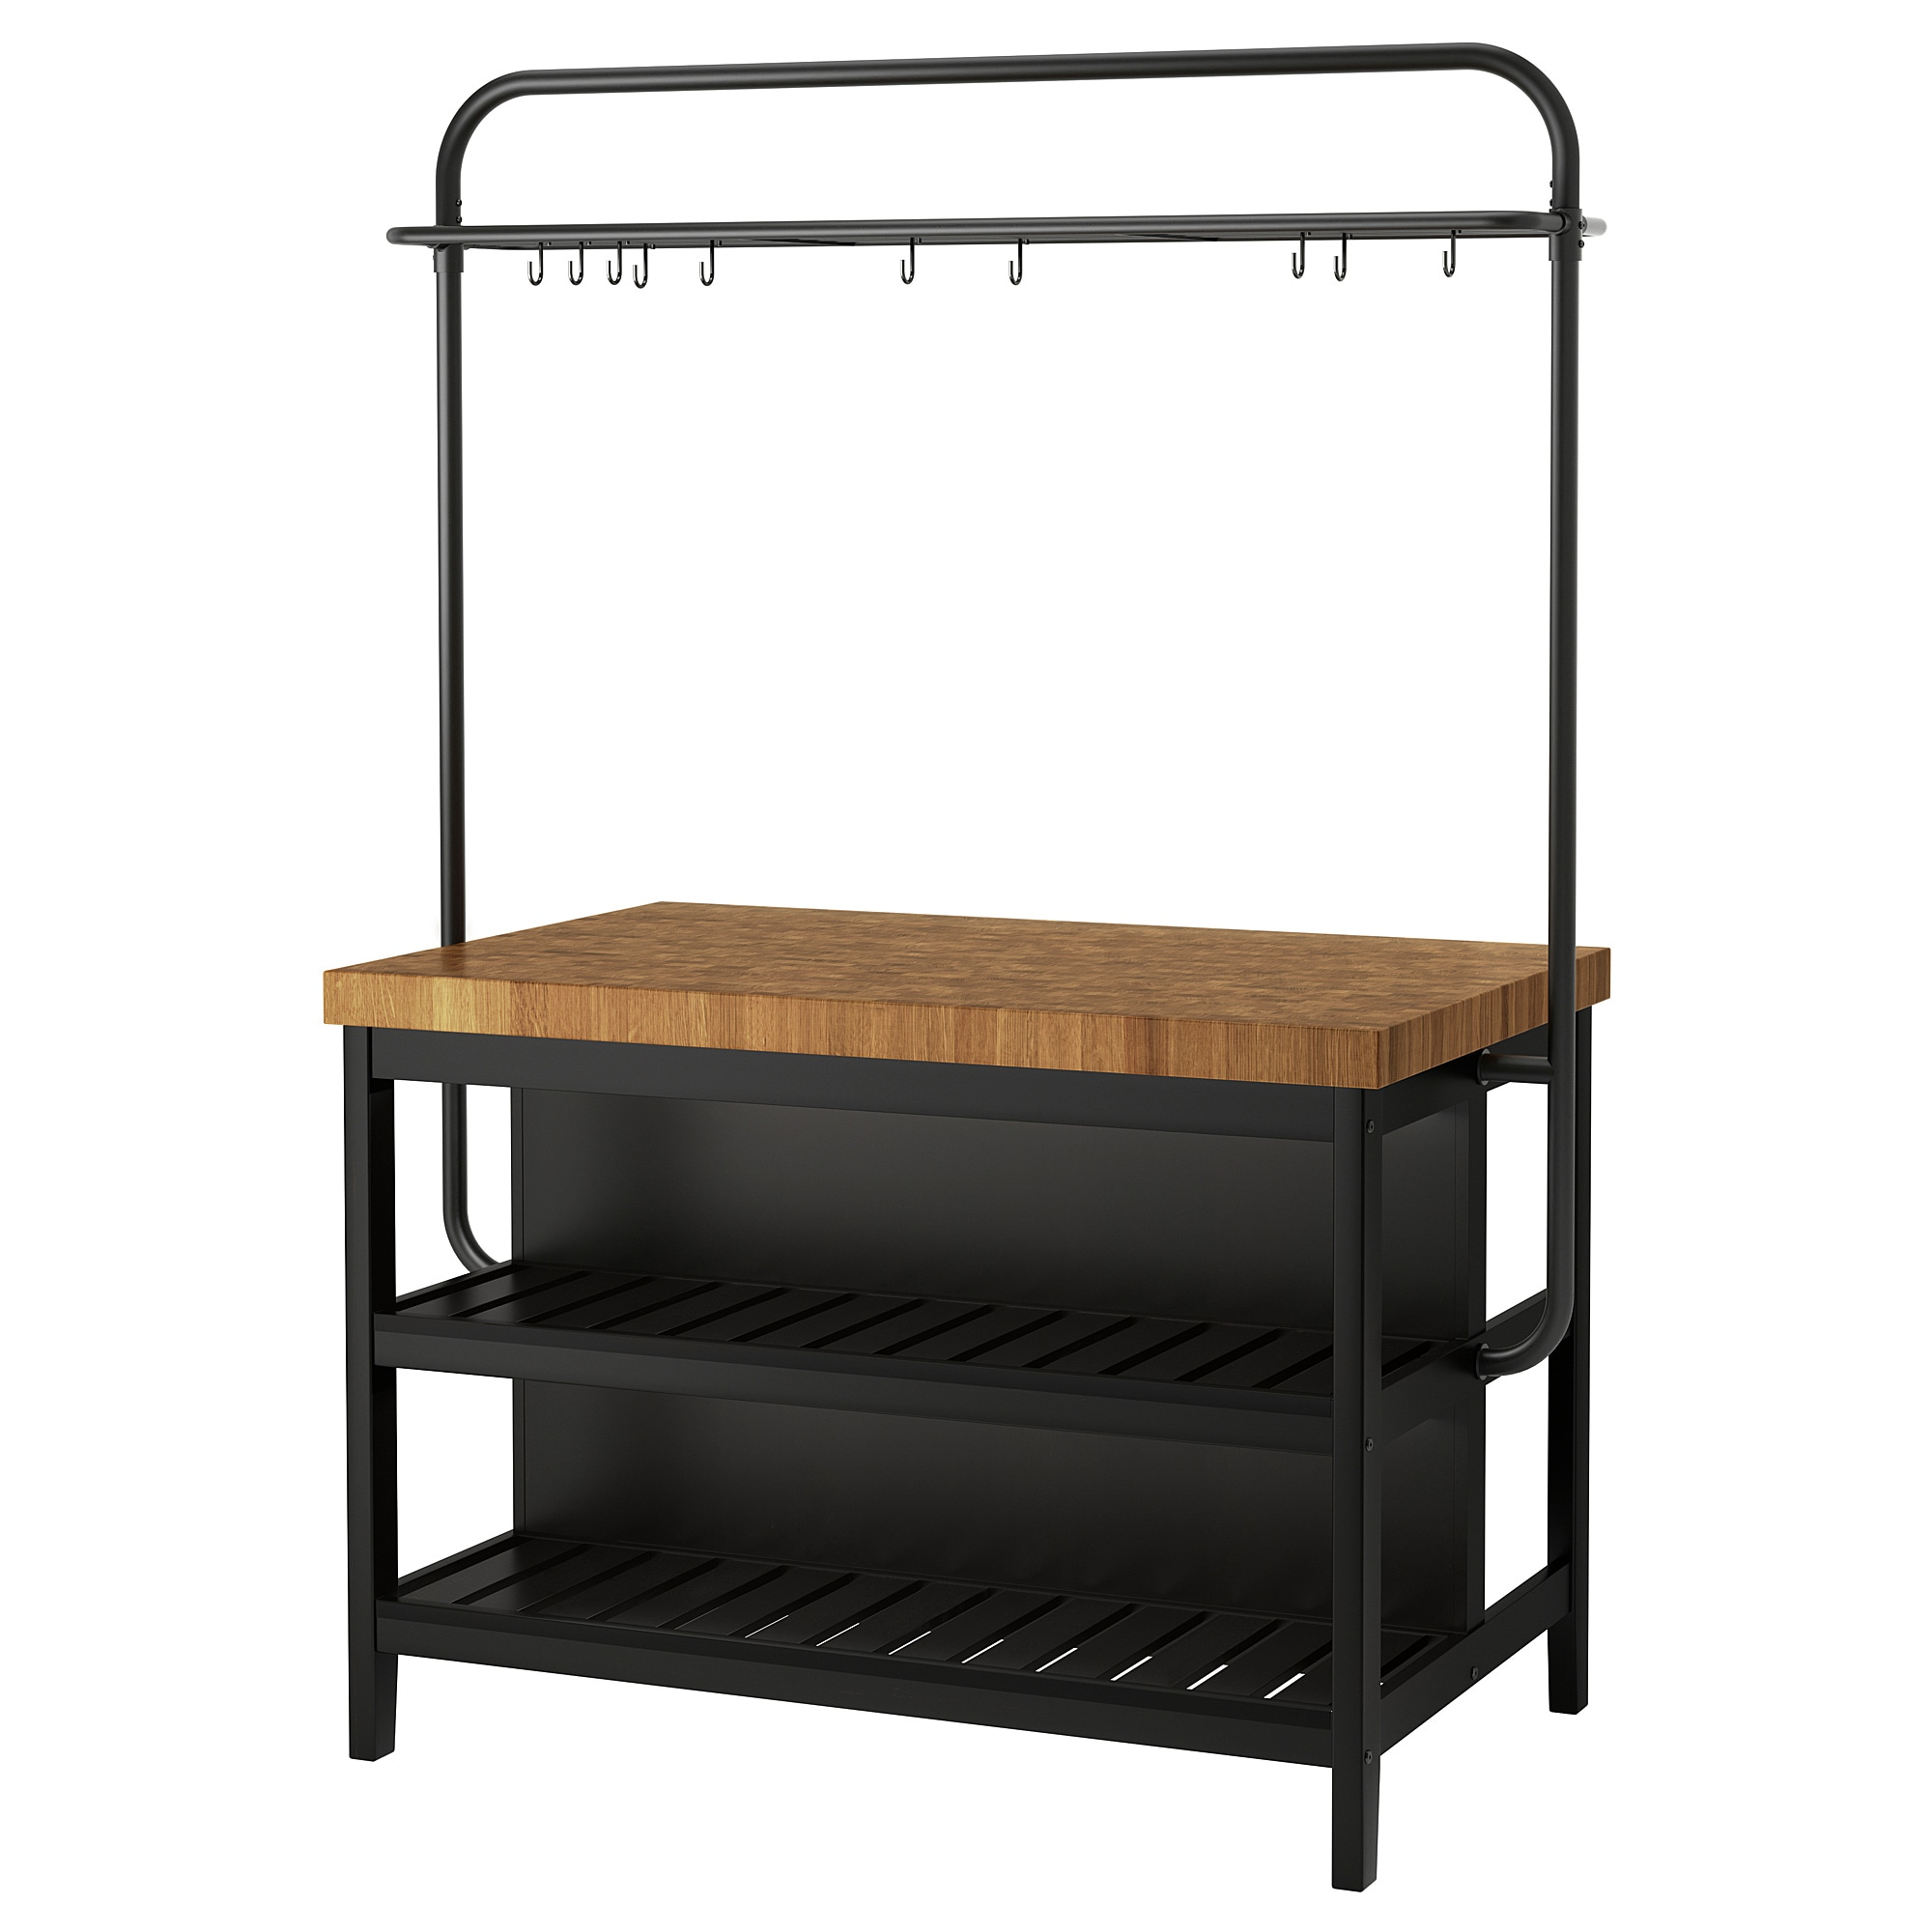 Kitchen Island With Rack Vadholma Black Oak